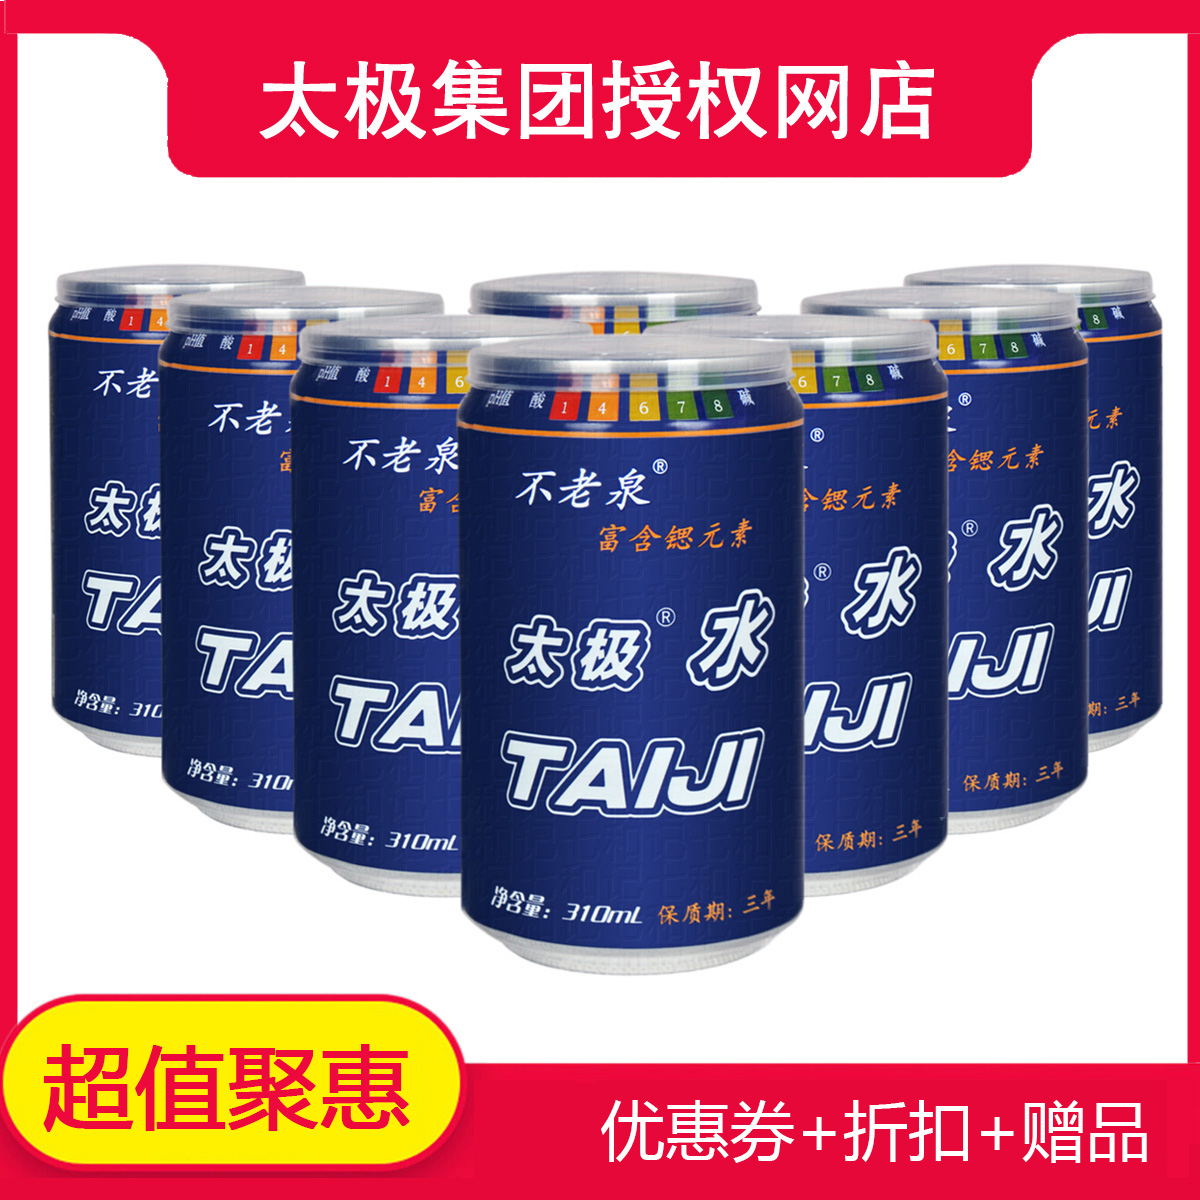 Taijishuibulao spring 12 cans of natural weak alkaline strontium rich drinking water tank containing high-end mineral water